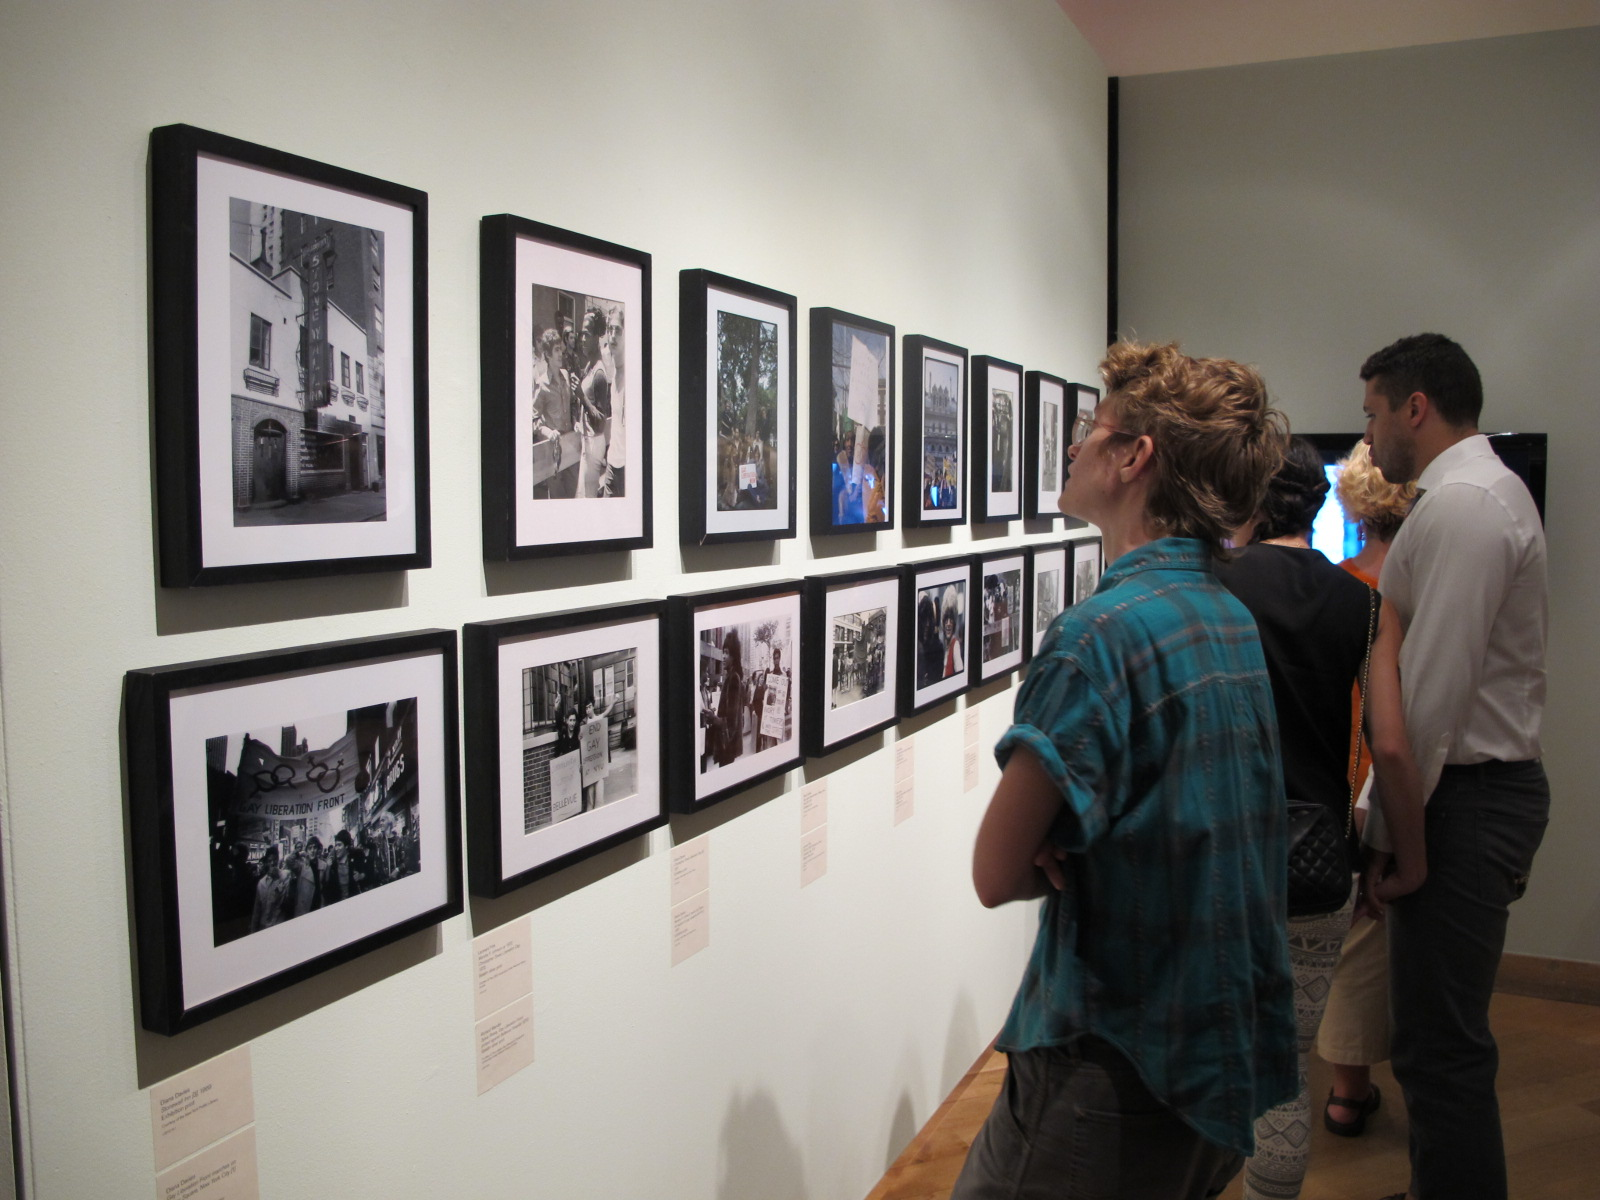 Archival images by Diana Davies, Leonard Fink and Richard C. Wandel.